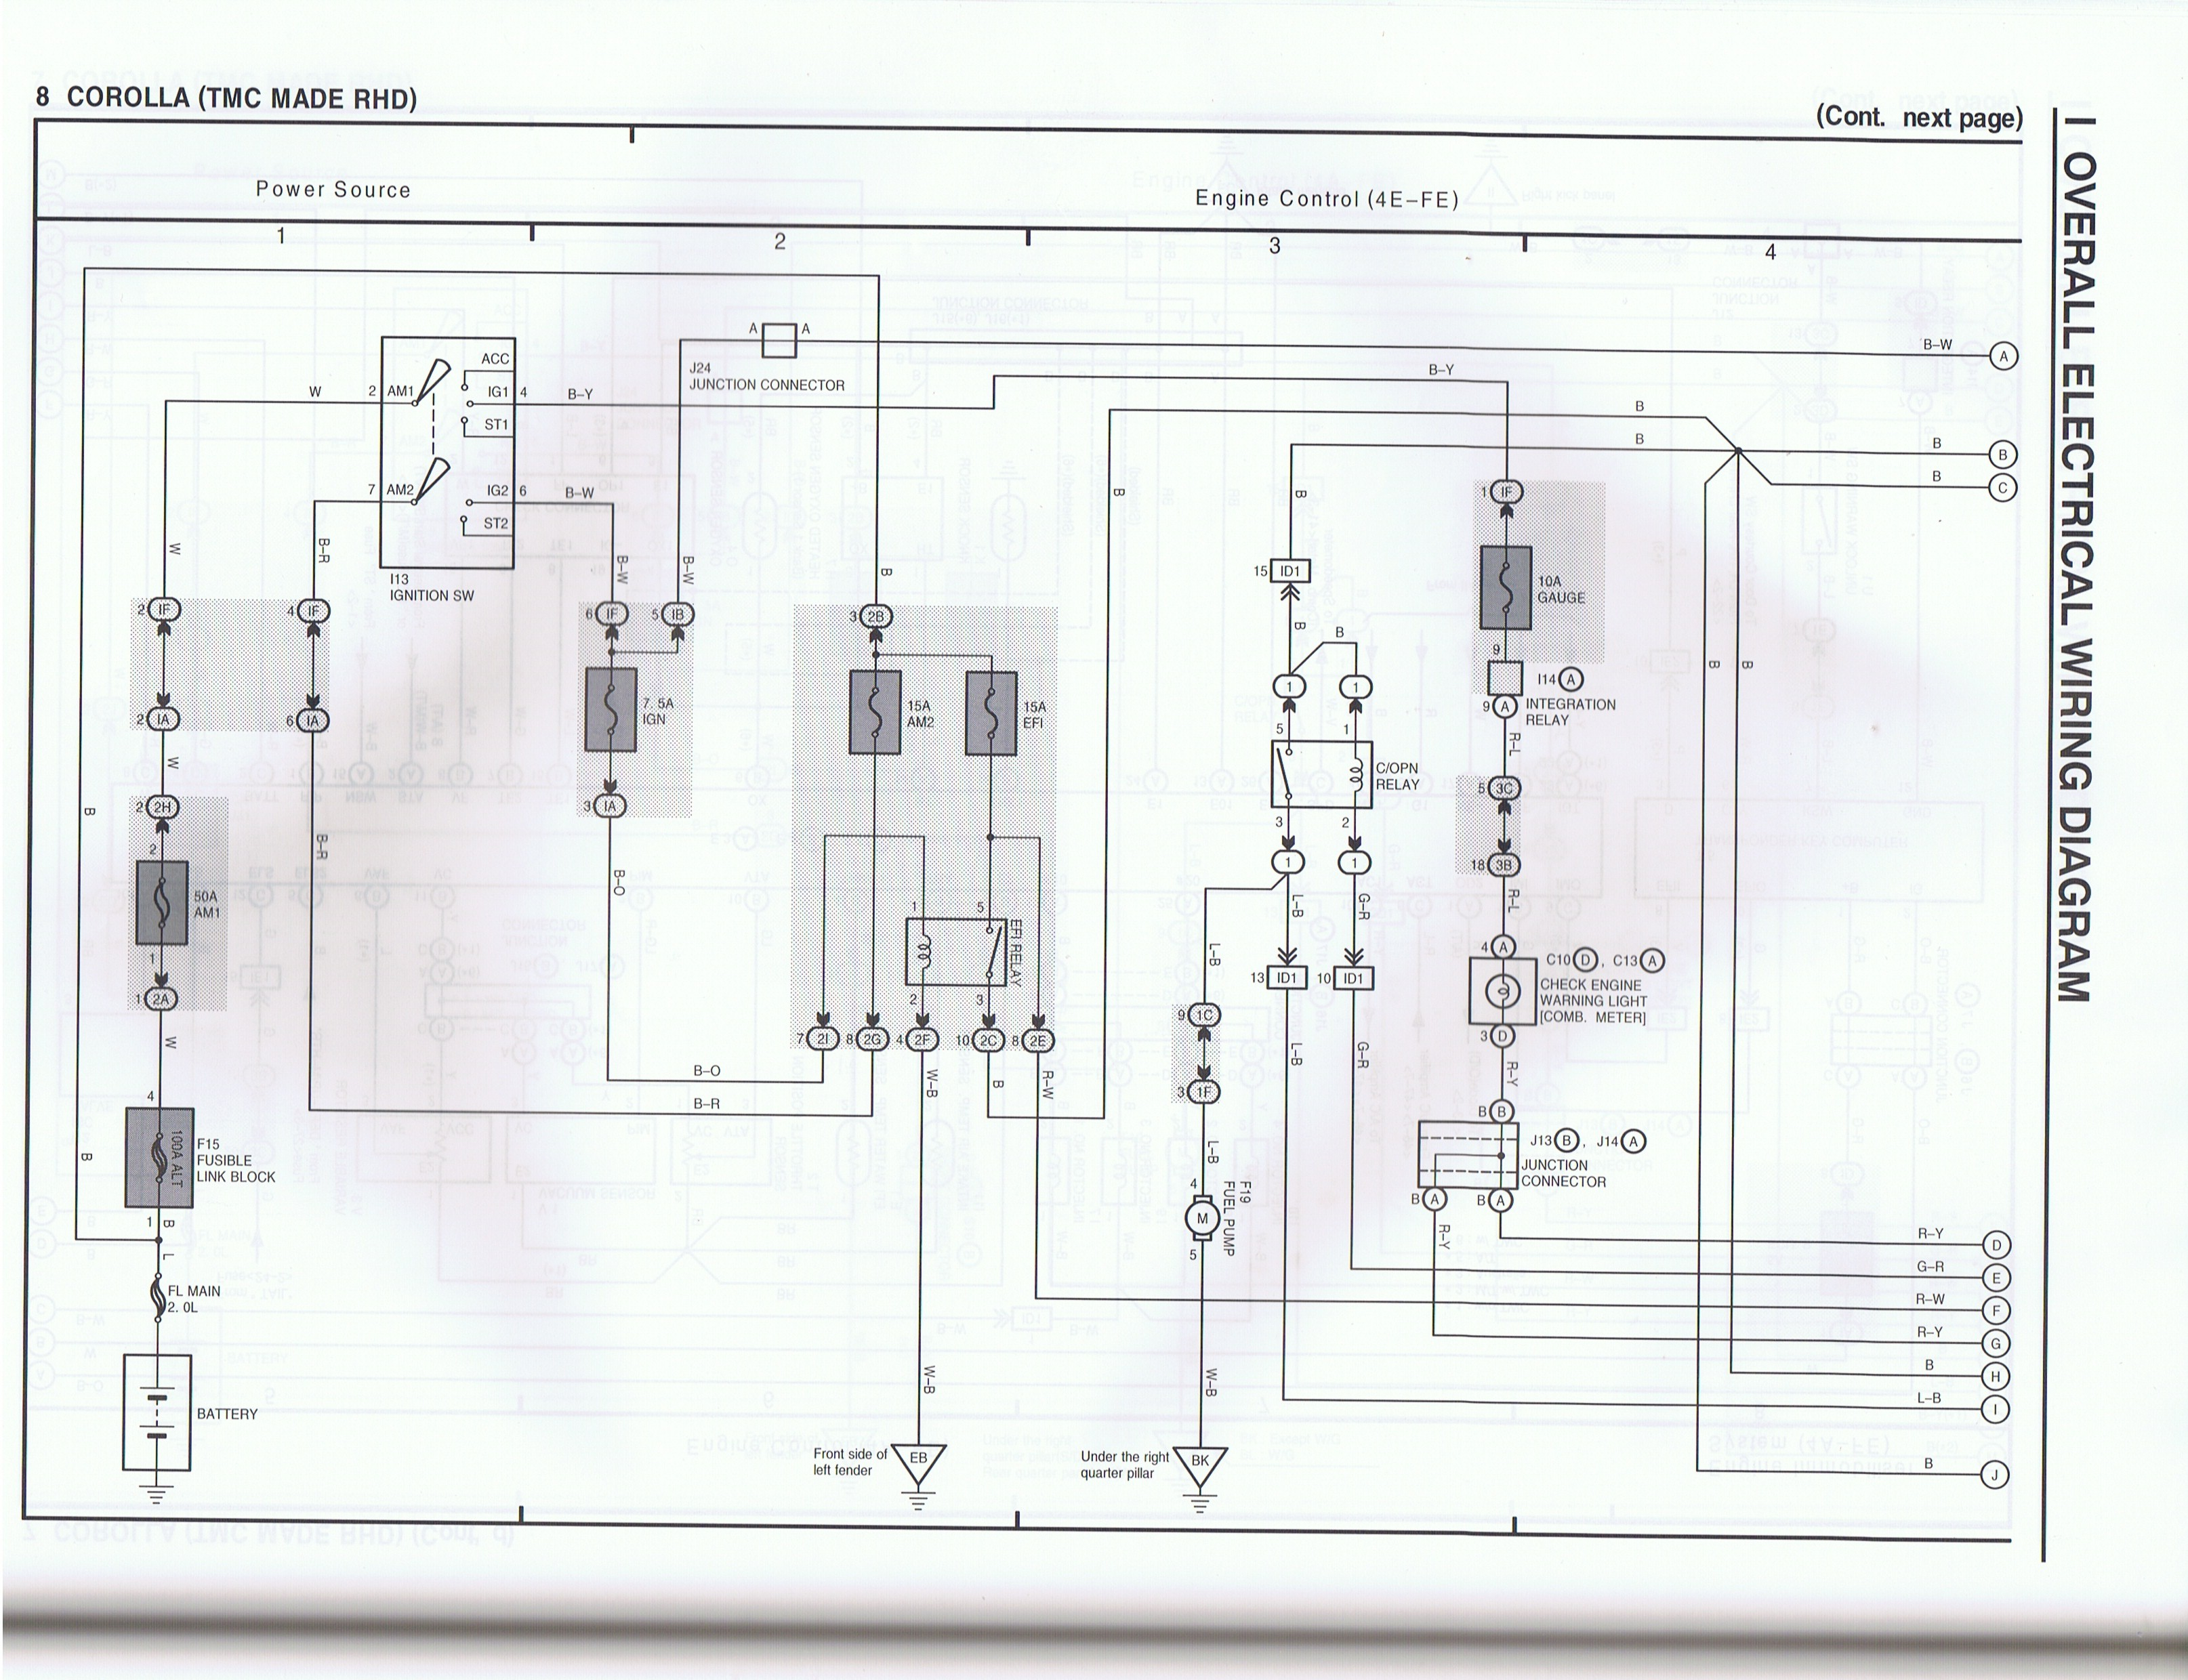 toyota ae111 wiring diagram toyota wiring diagrams 71524e fe ecu diagram toyota ae wiring diagram 71524e fe ecu diagram